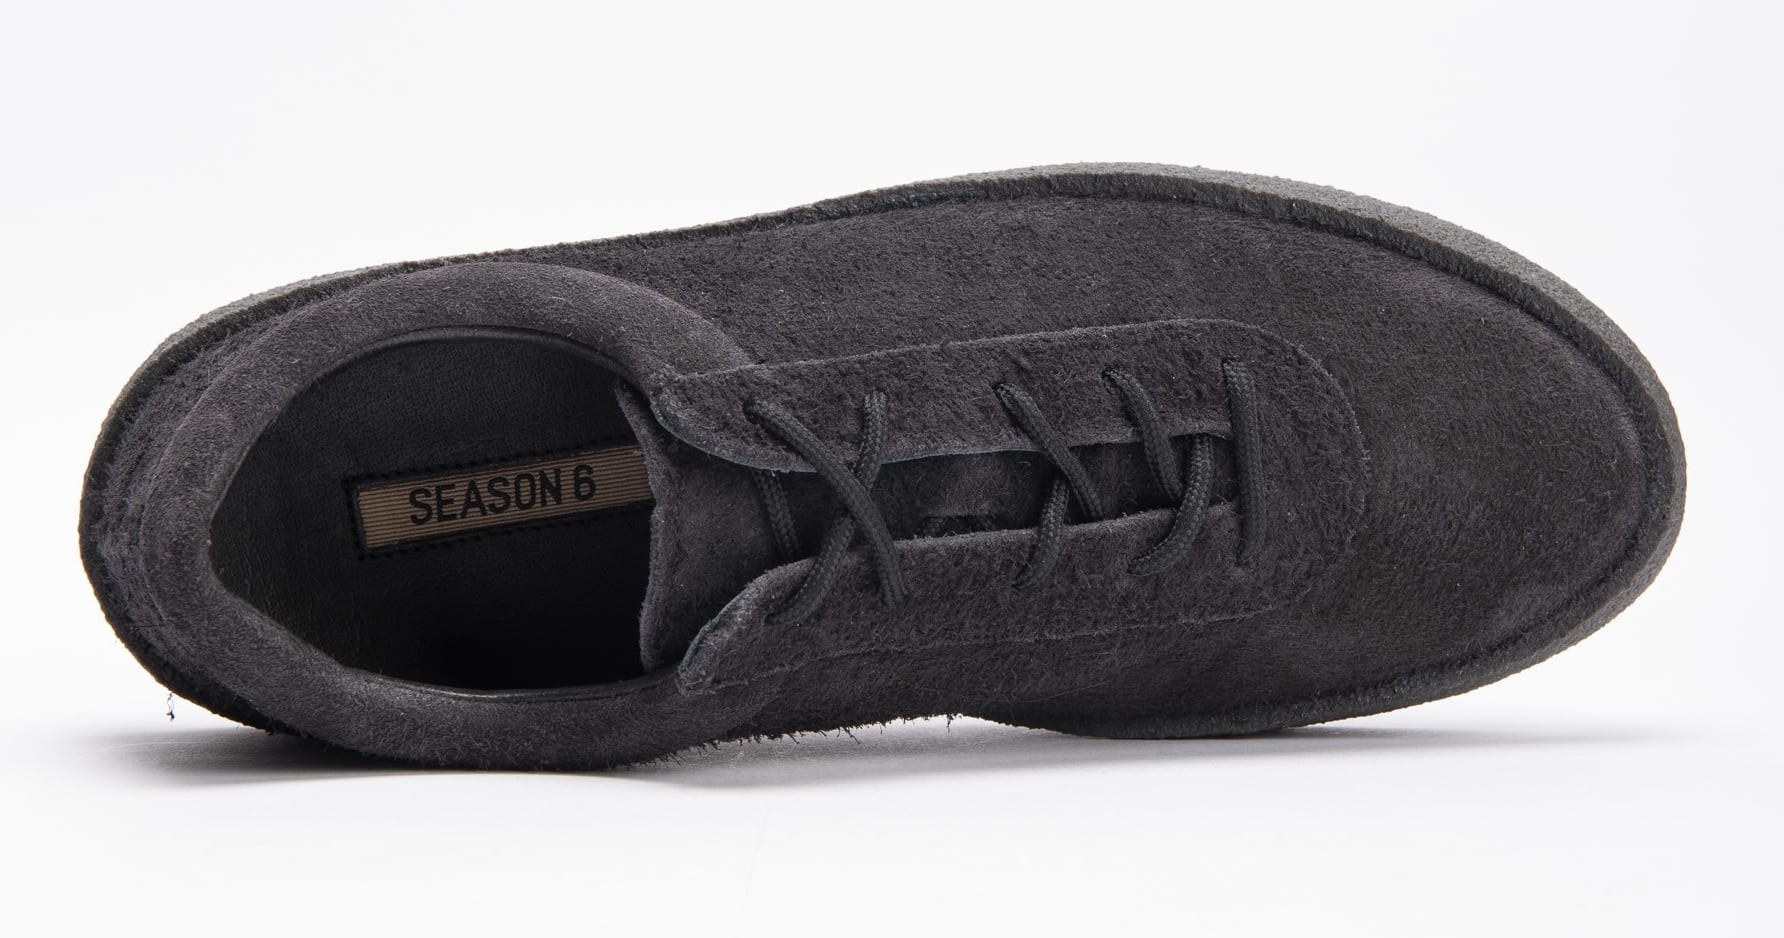 Yeezy Season 6 Crepe Sneaker Thick Shaggy Suede 'Black' KM5001-039 4